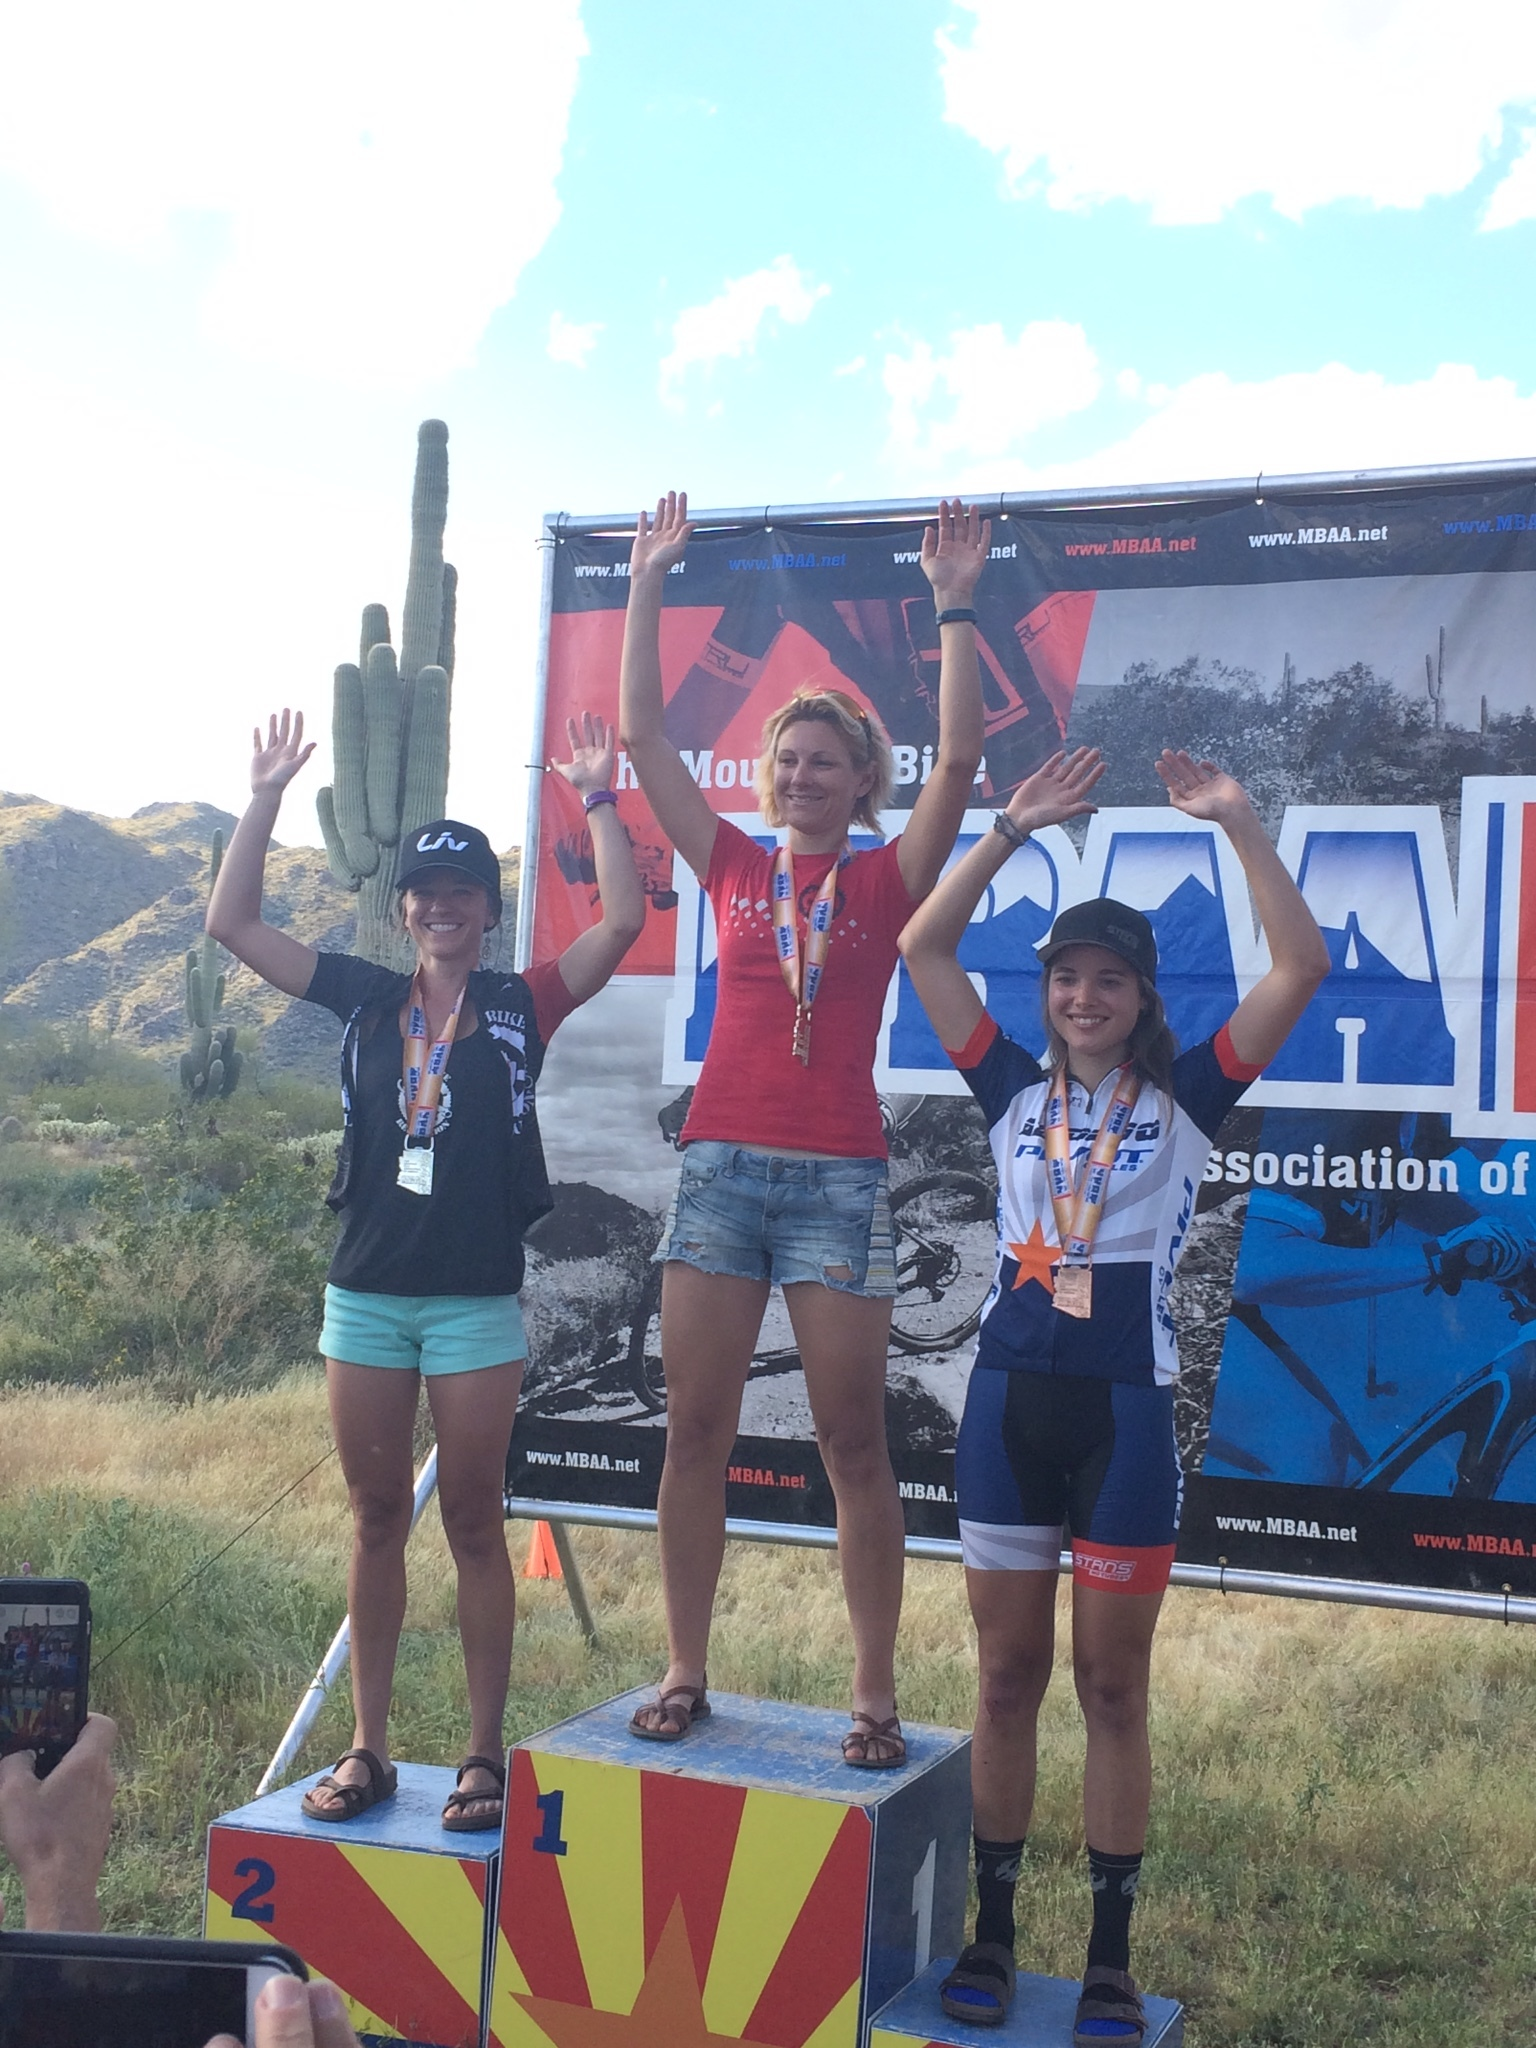 Erin Osborne (left) took 2nd place in the women's Expert Open category.